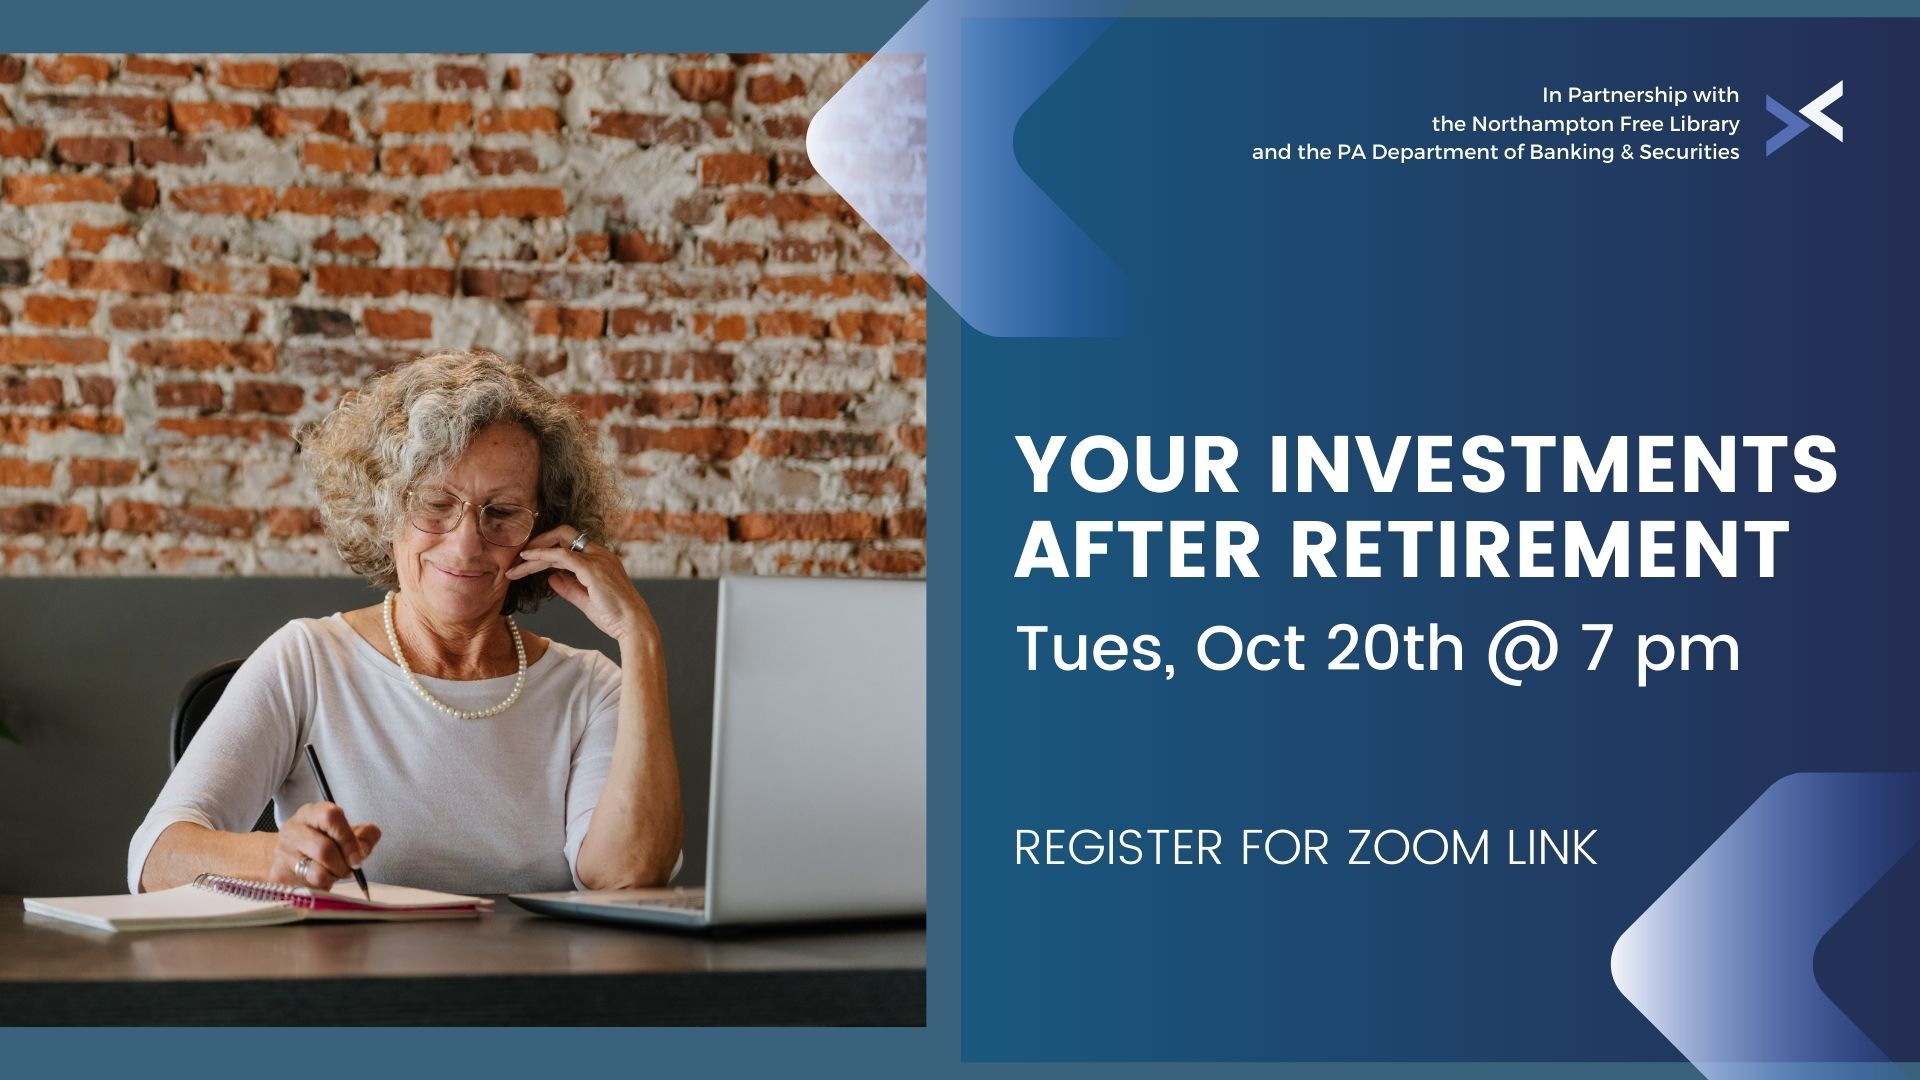 Your Investments: After Retirement Presented by the PA Department of Banking and Securities